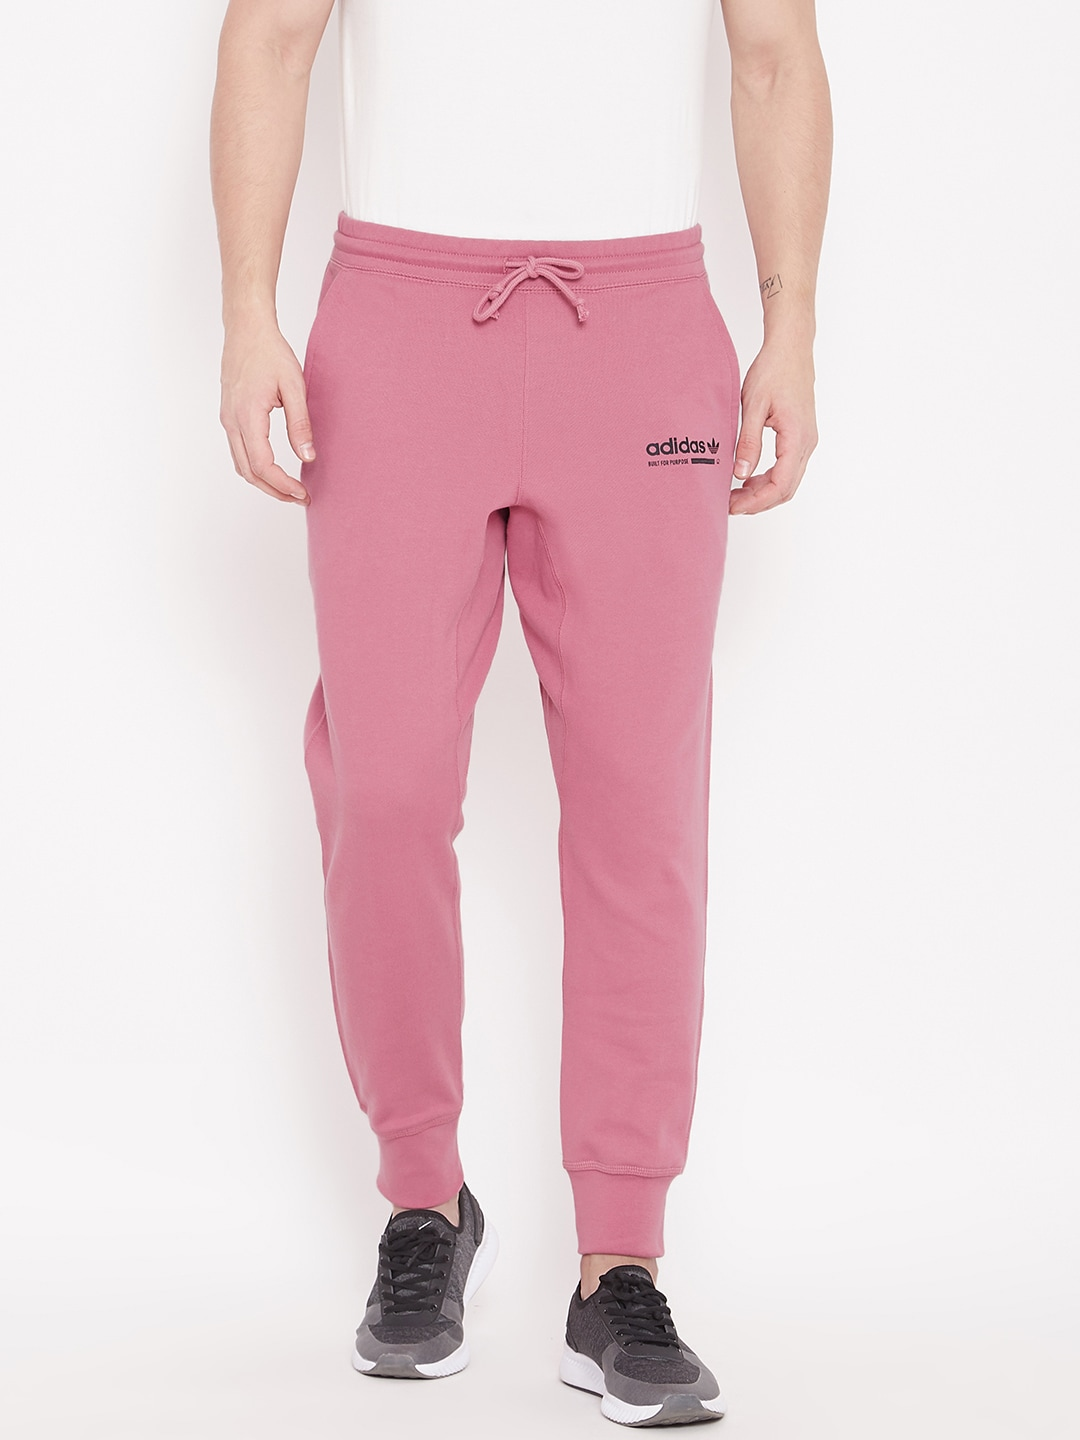 new release exceptional range of colors fashionable and attractive package ADIDAS Originals Men Pink Solid KAVAL Joggers